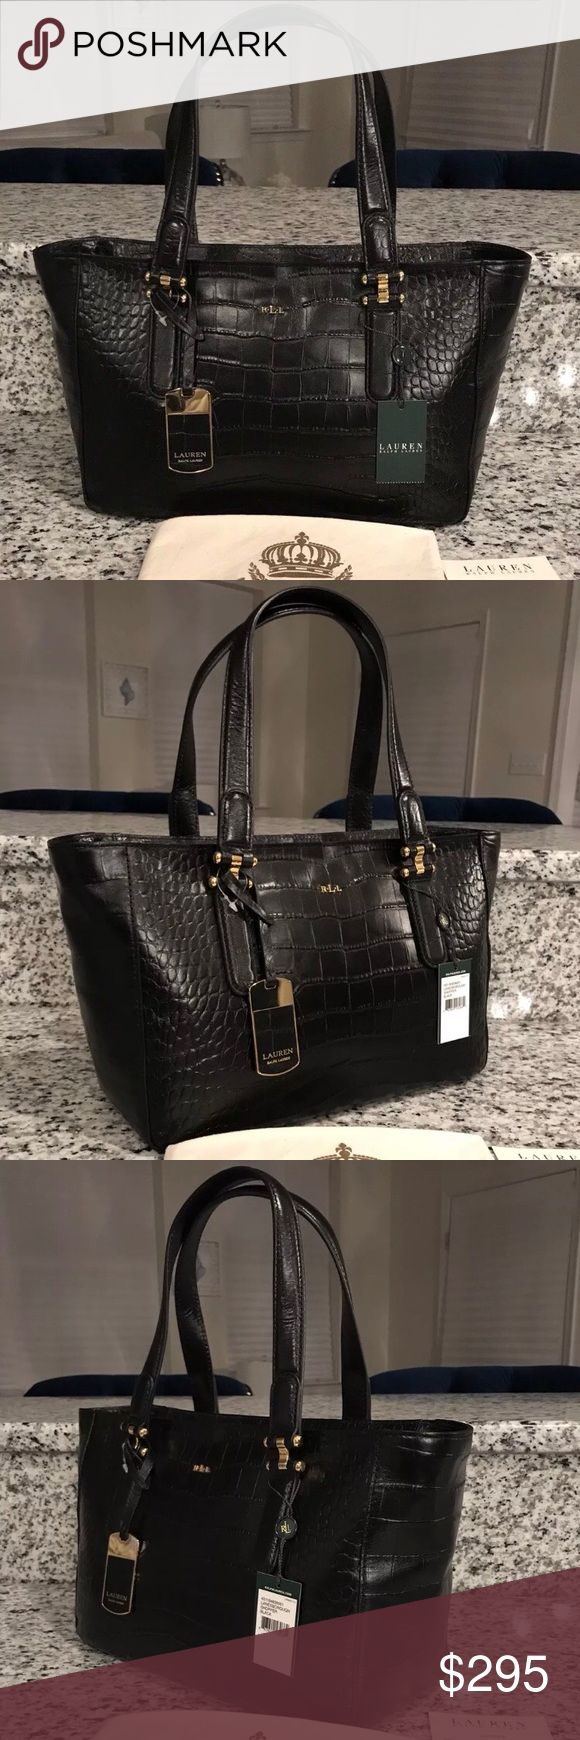 ⭐️Lauren Ralph Lauren NWT Lanesborough Leather Bag STUNNING!!! New With Tags! The GORGEOUS & RARE Lauren Ralph Lauren Lanesborough Shopper Leather Tote Satchel Shoulder Handbag Purse in a RICH Black Color! This BEAUTIFUL Lauren Ralph Lauren Bag will come with Tags, Care Card, Original Stuffing & Lauren Ralph Lauren Dust Bag!!! Purchased at a High-End Department Store. This is a GORGEOUS croc embossed leather which resists scratches, so this beautiful, classic black leather bag will stay…